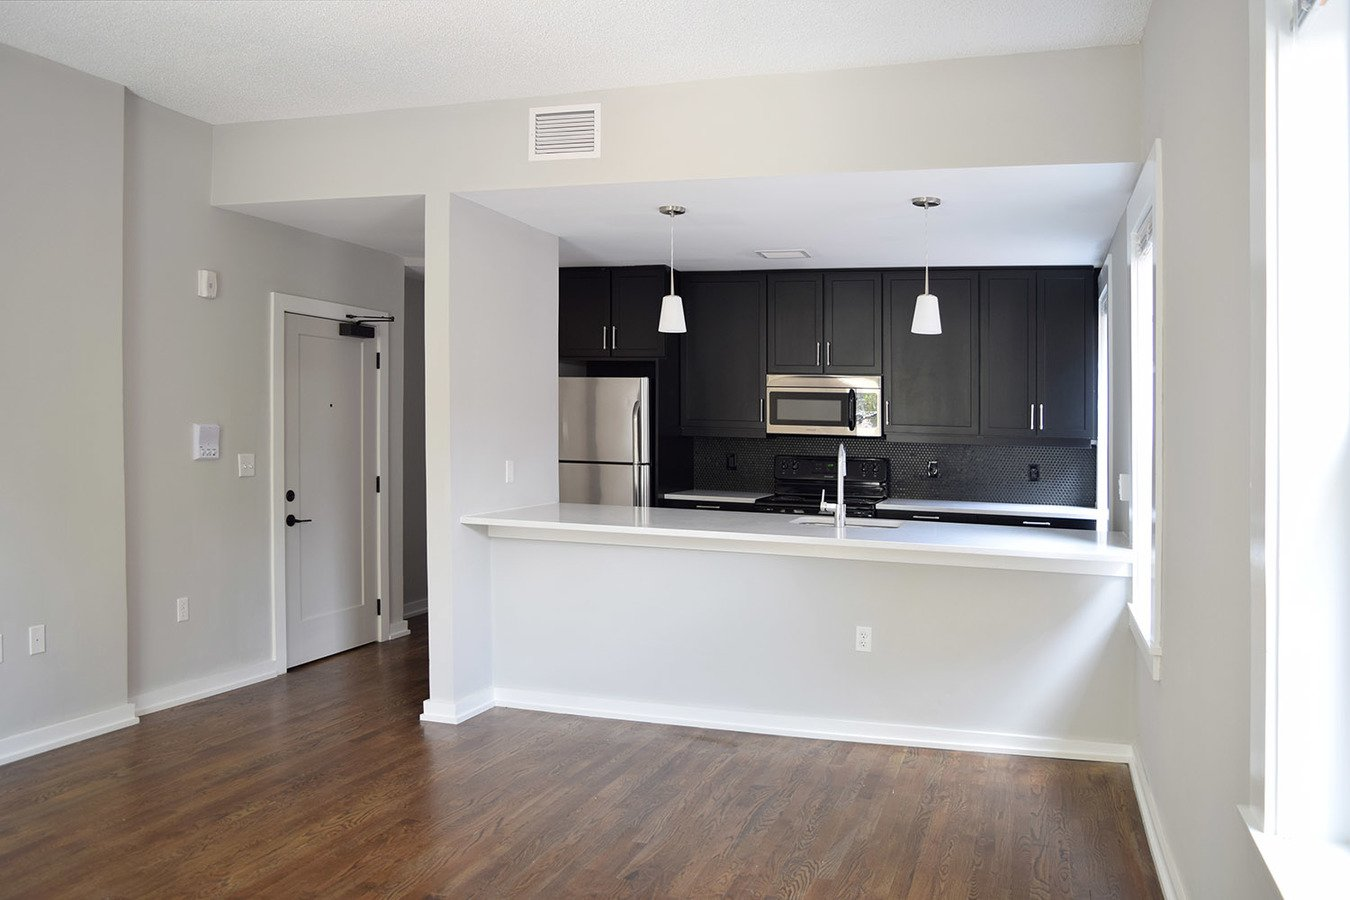 2 Bedrooms 1 Bathroom Apartment for rent at The Colonnades in Kansas City, MO